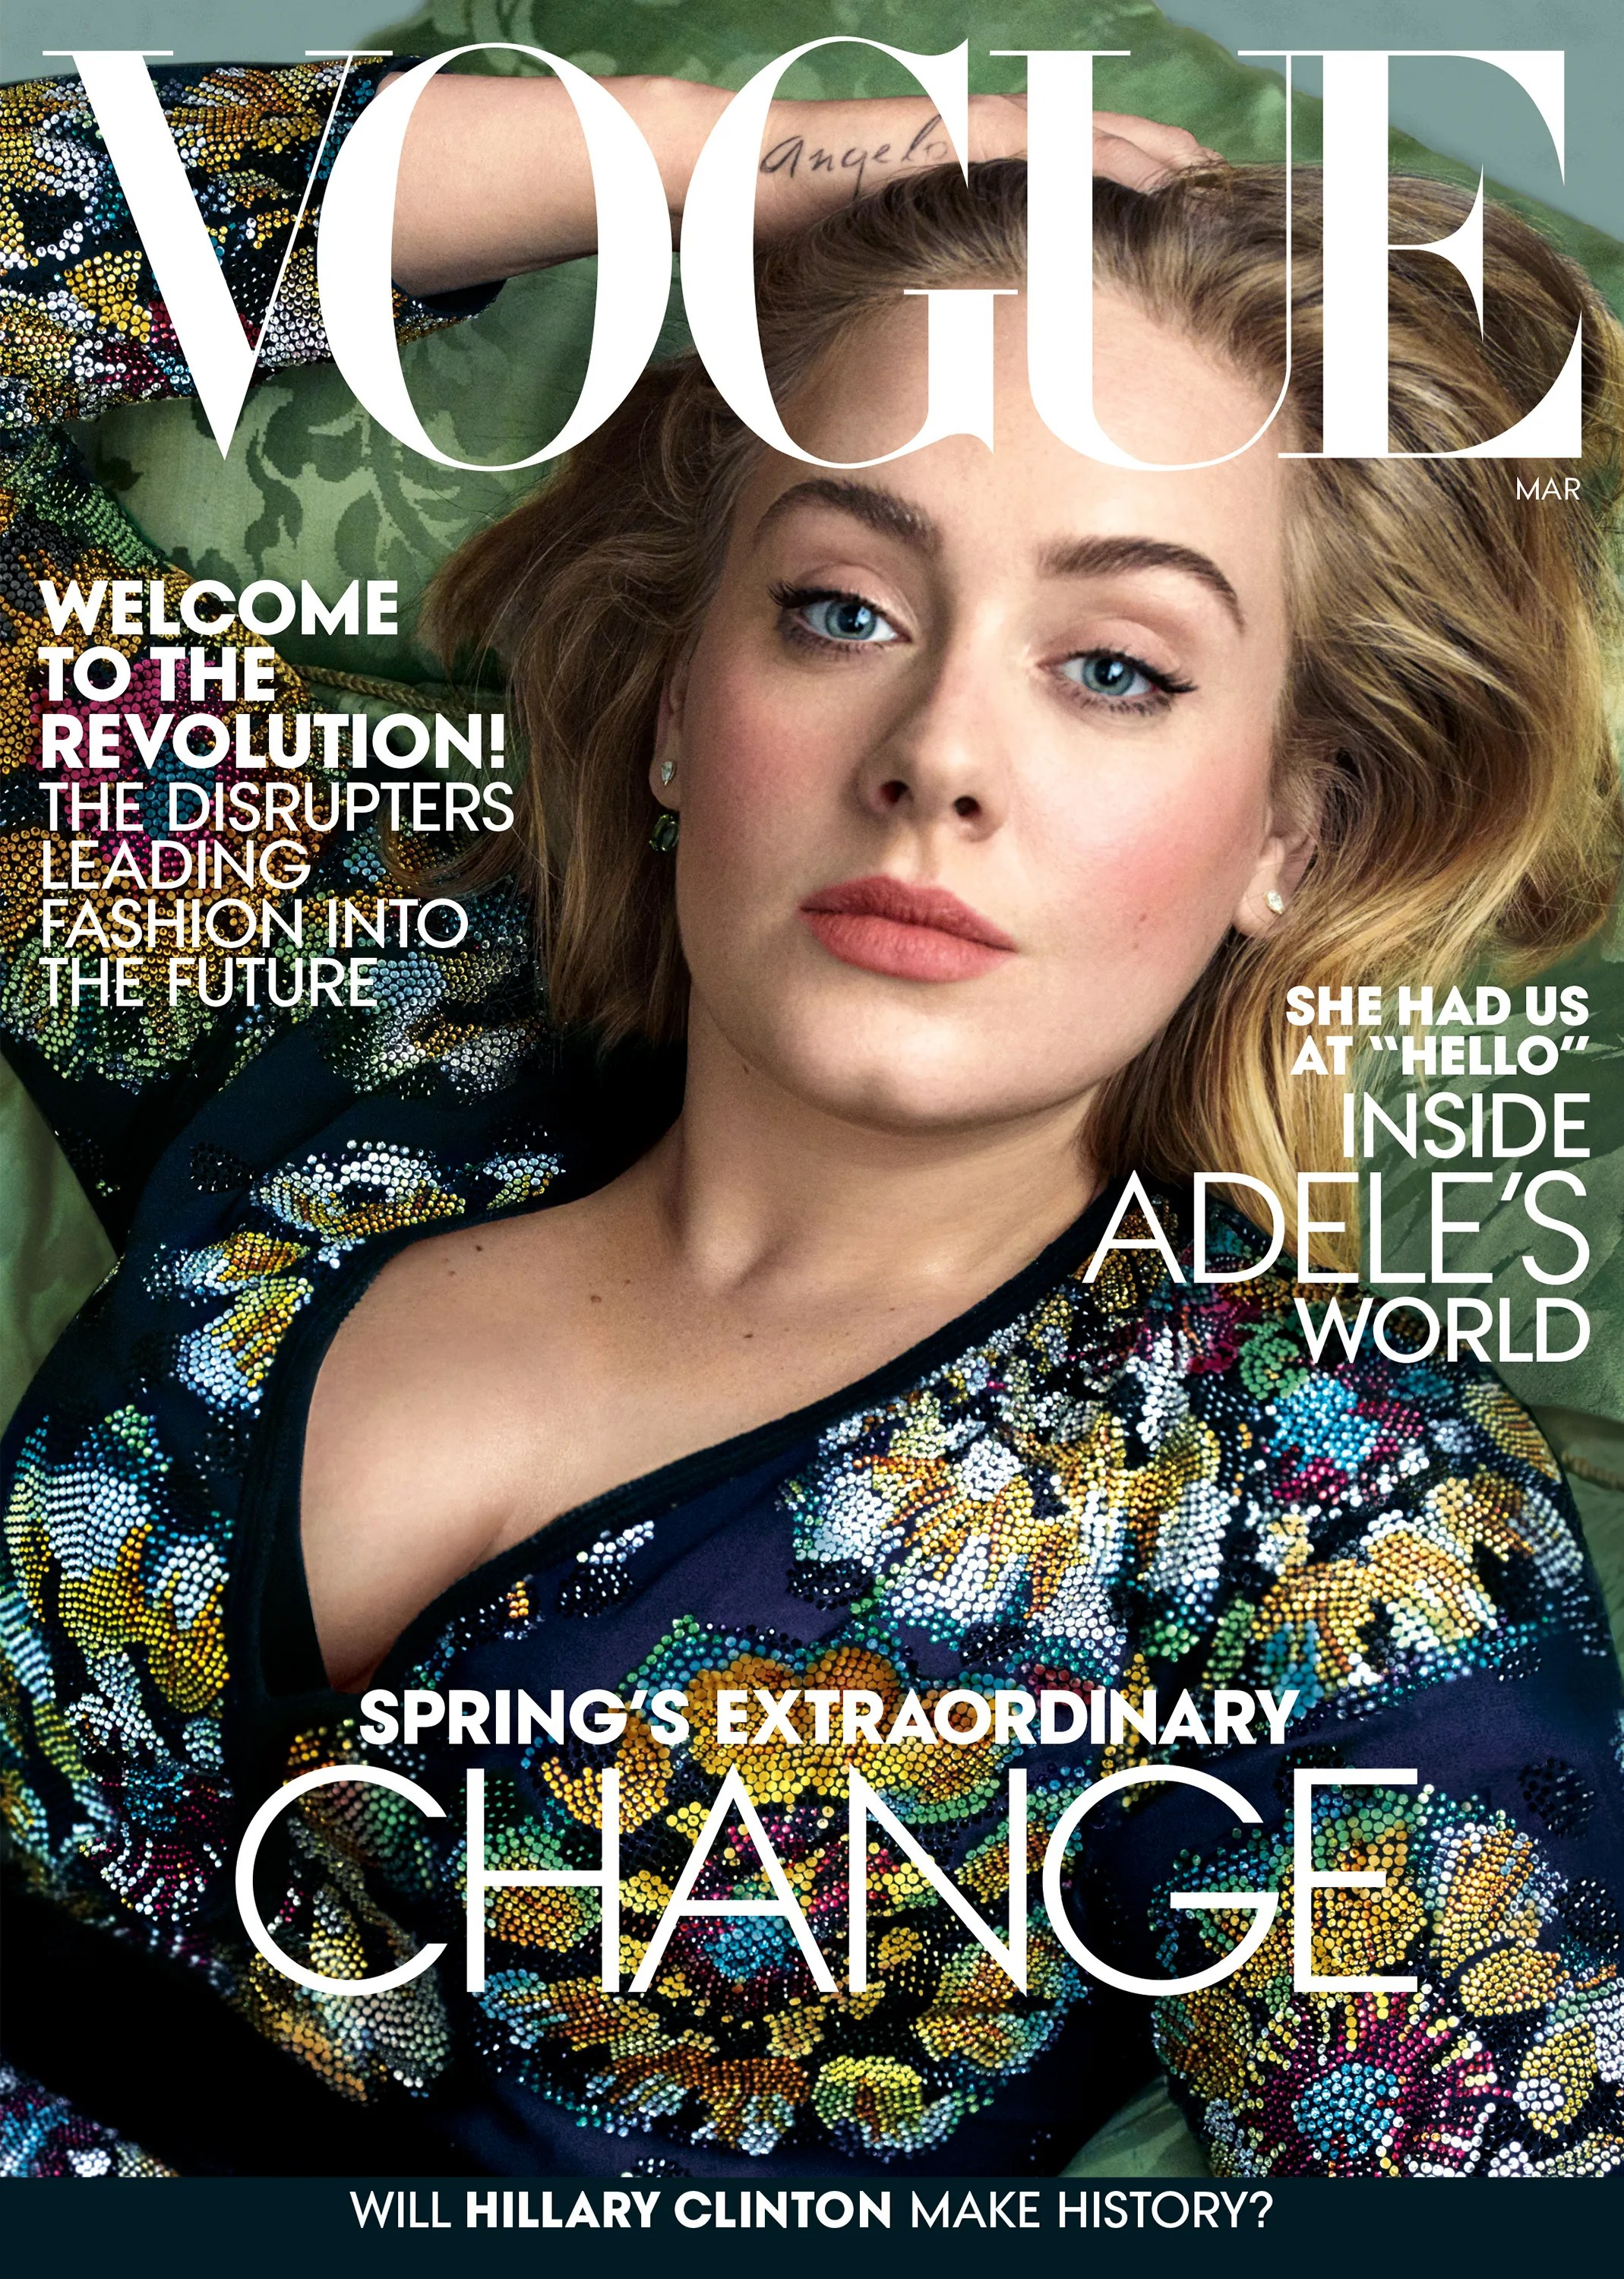 https://i0.wp.com/assets.vogue.com/photos/5876ec3371b368a625a080c7/master/pass/adele-vogue-cover-march-2016.jpg